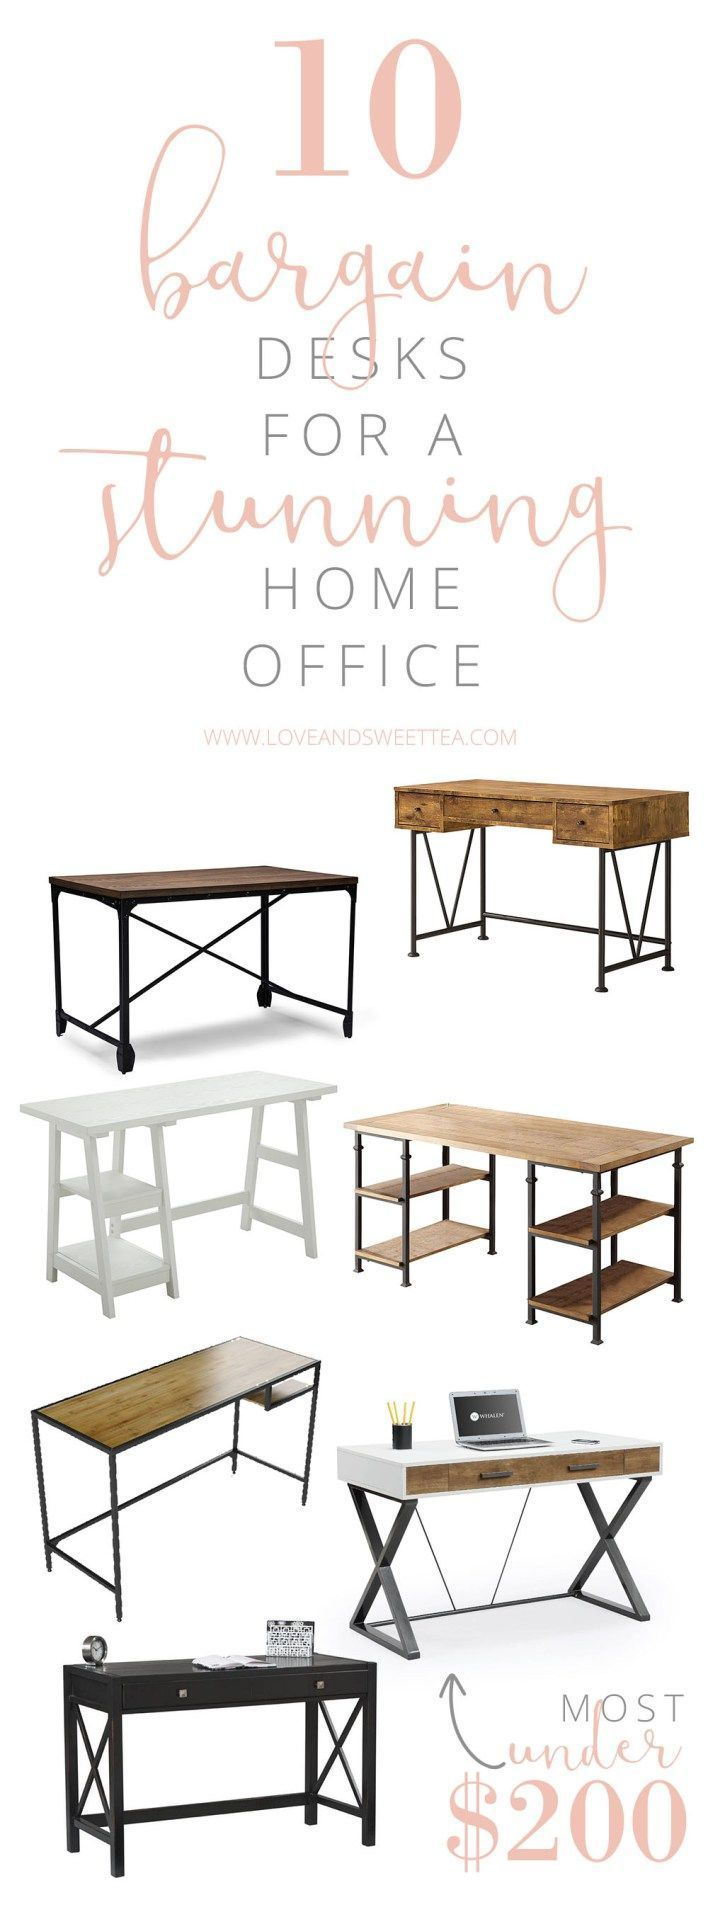 168 best Modern Computer Desks images on Pinterest | Bedrooms ...